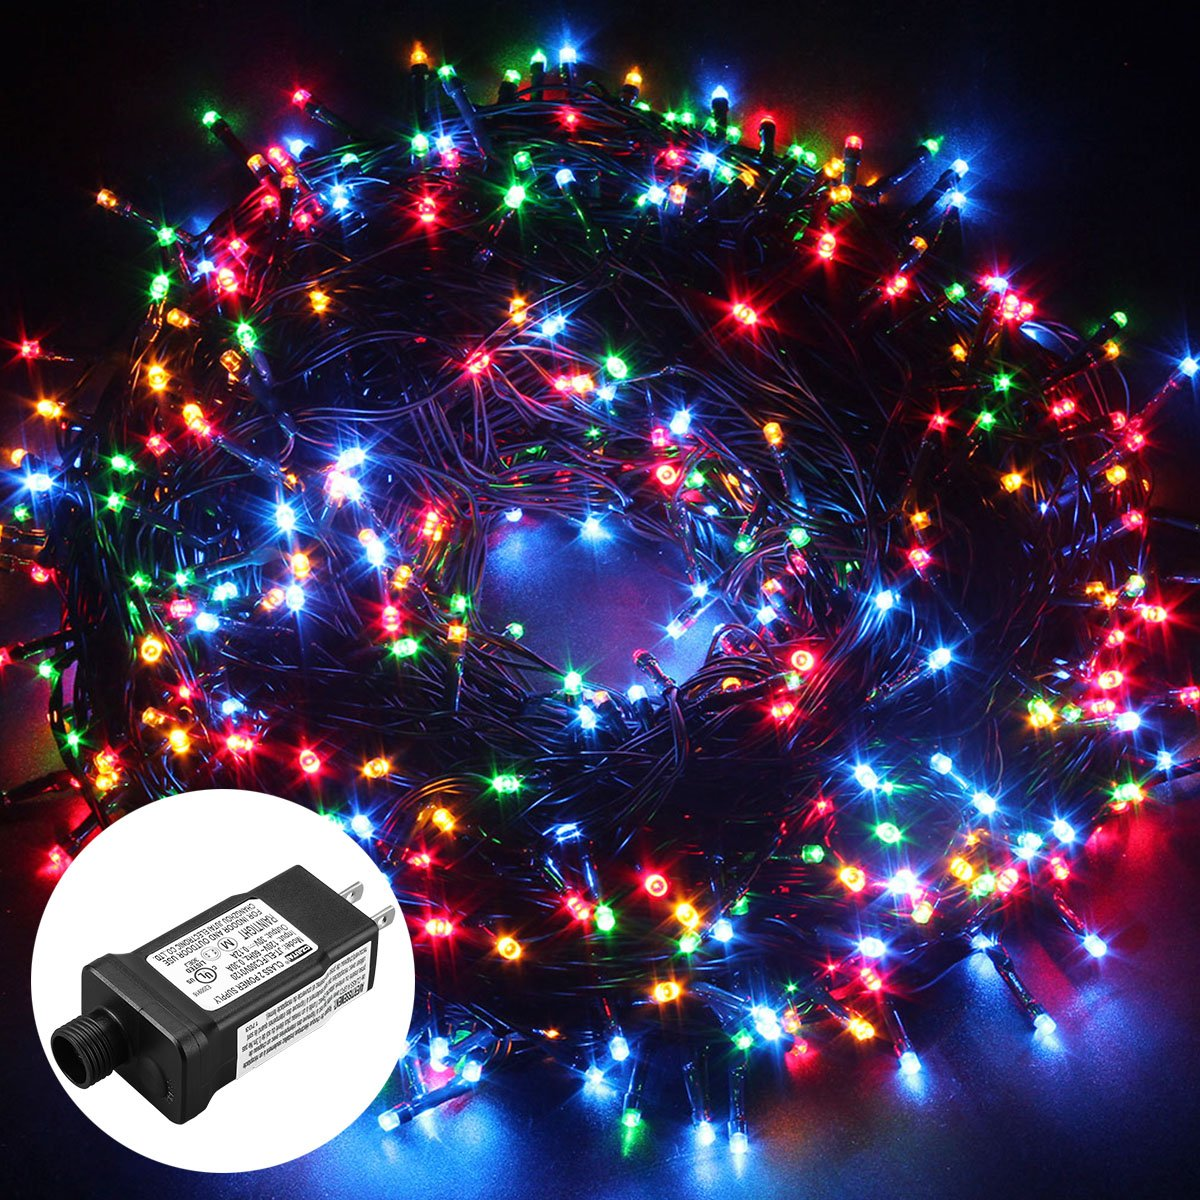 Excelvan Safe Low Voltage 500 LEDs 100M/328FT Dimmable Fairy String Lights with 8 Modes for Bedroom Patio Garden Gate Yard Party Wedding Christmas Decoration, Multi Color